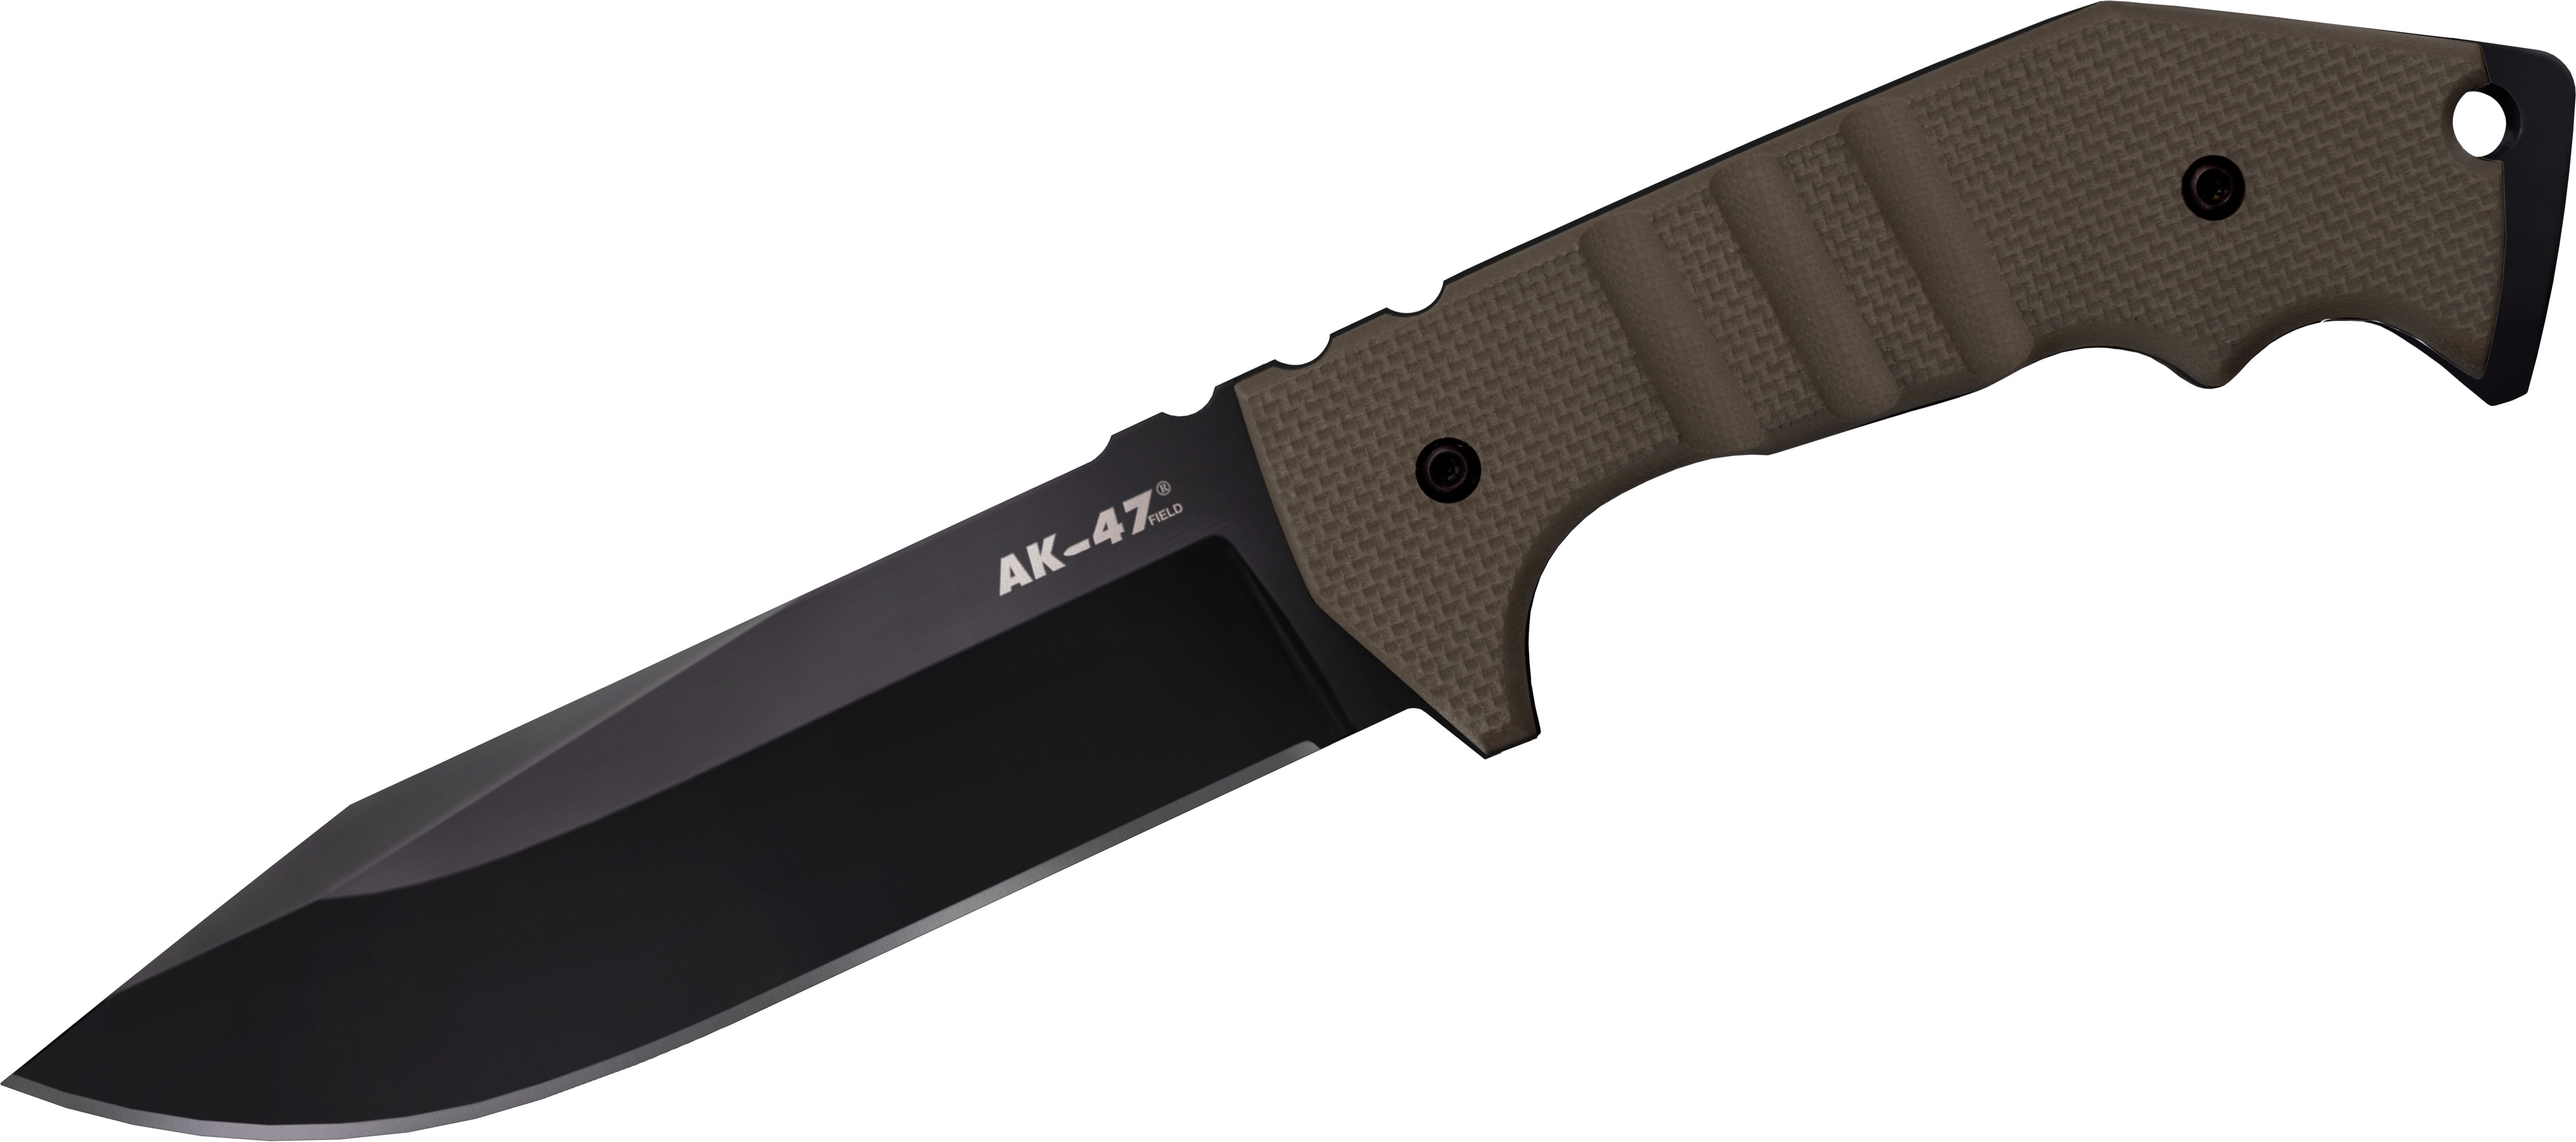 Cold Steel 14AKVG AK 47 Field Knife Fixed 52 CPM 3V Blade OD Green